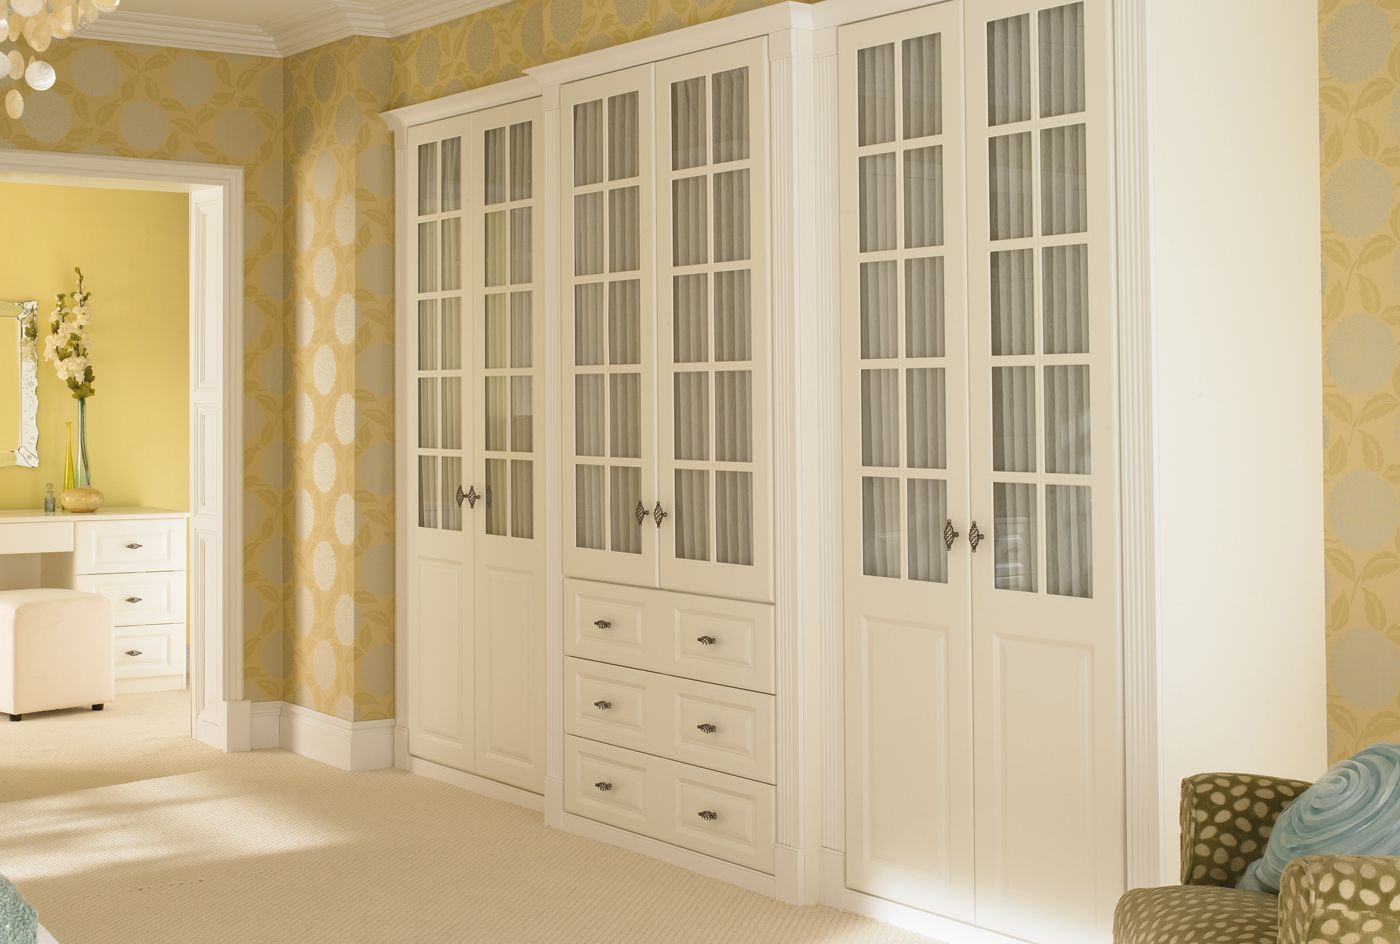 Glass panelled wardrobe doors from the concerto white bedroom